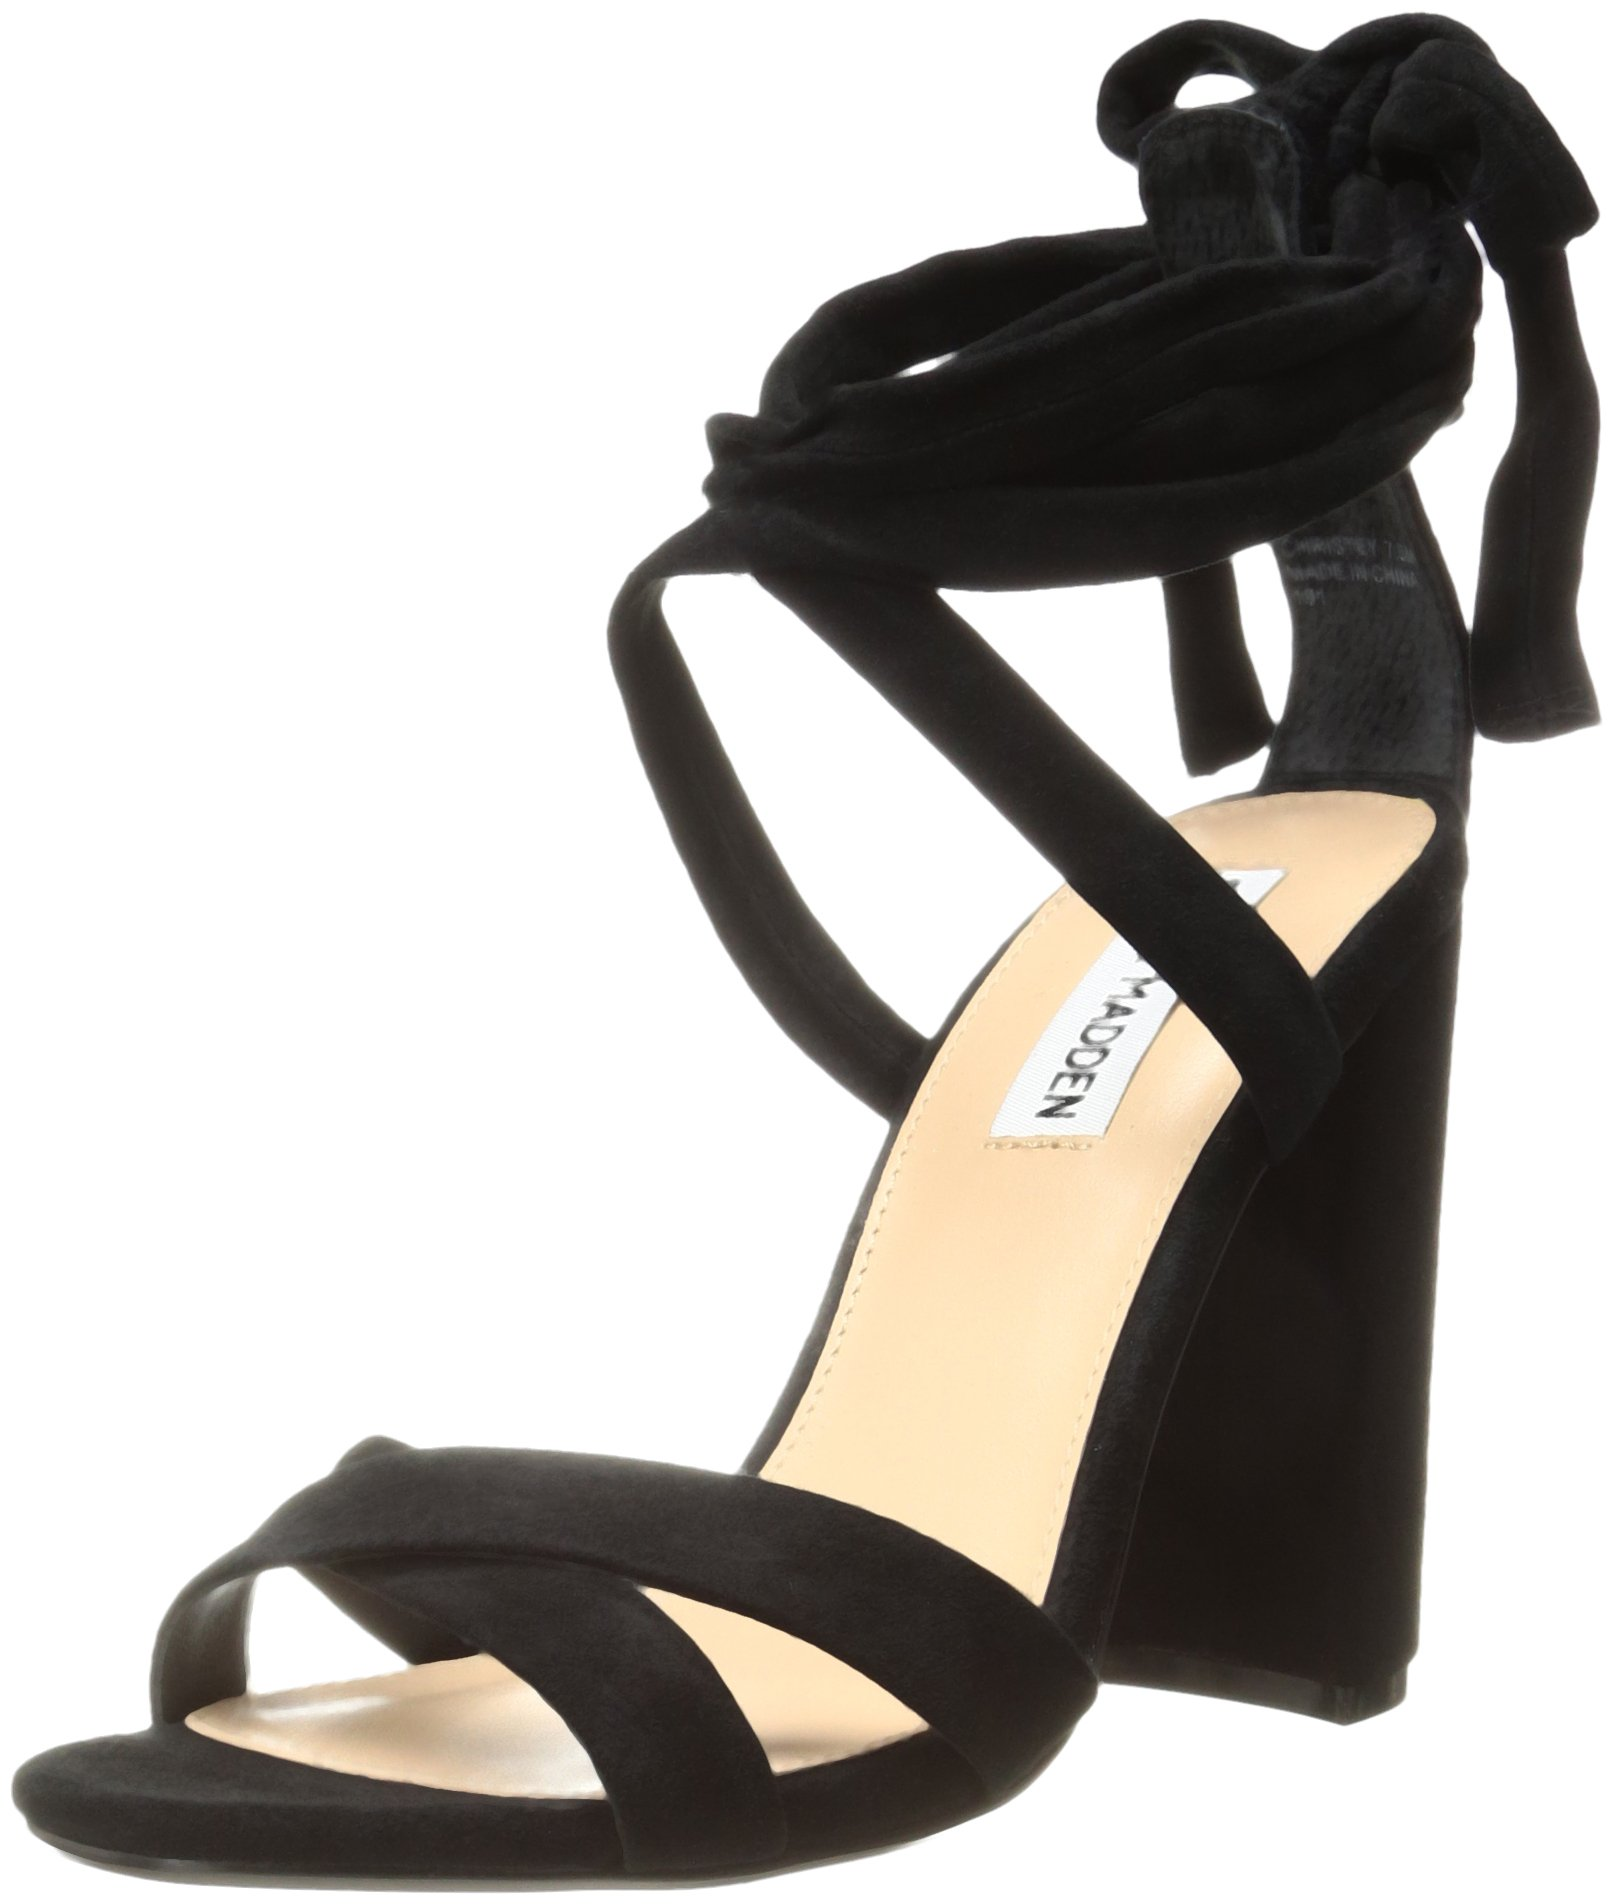 Steve Madden Women's Christey Dress Sandal, Black Suede, 9 M US